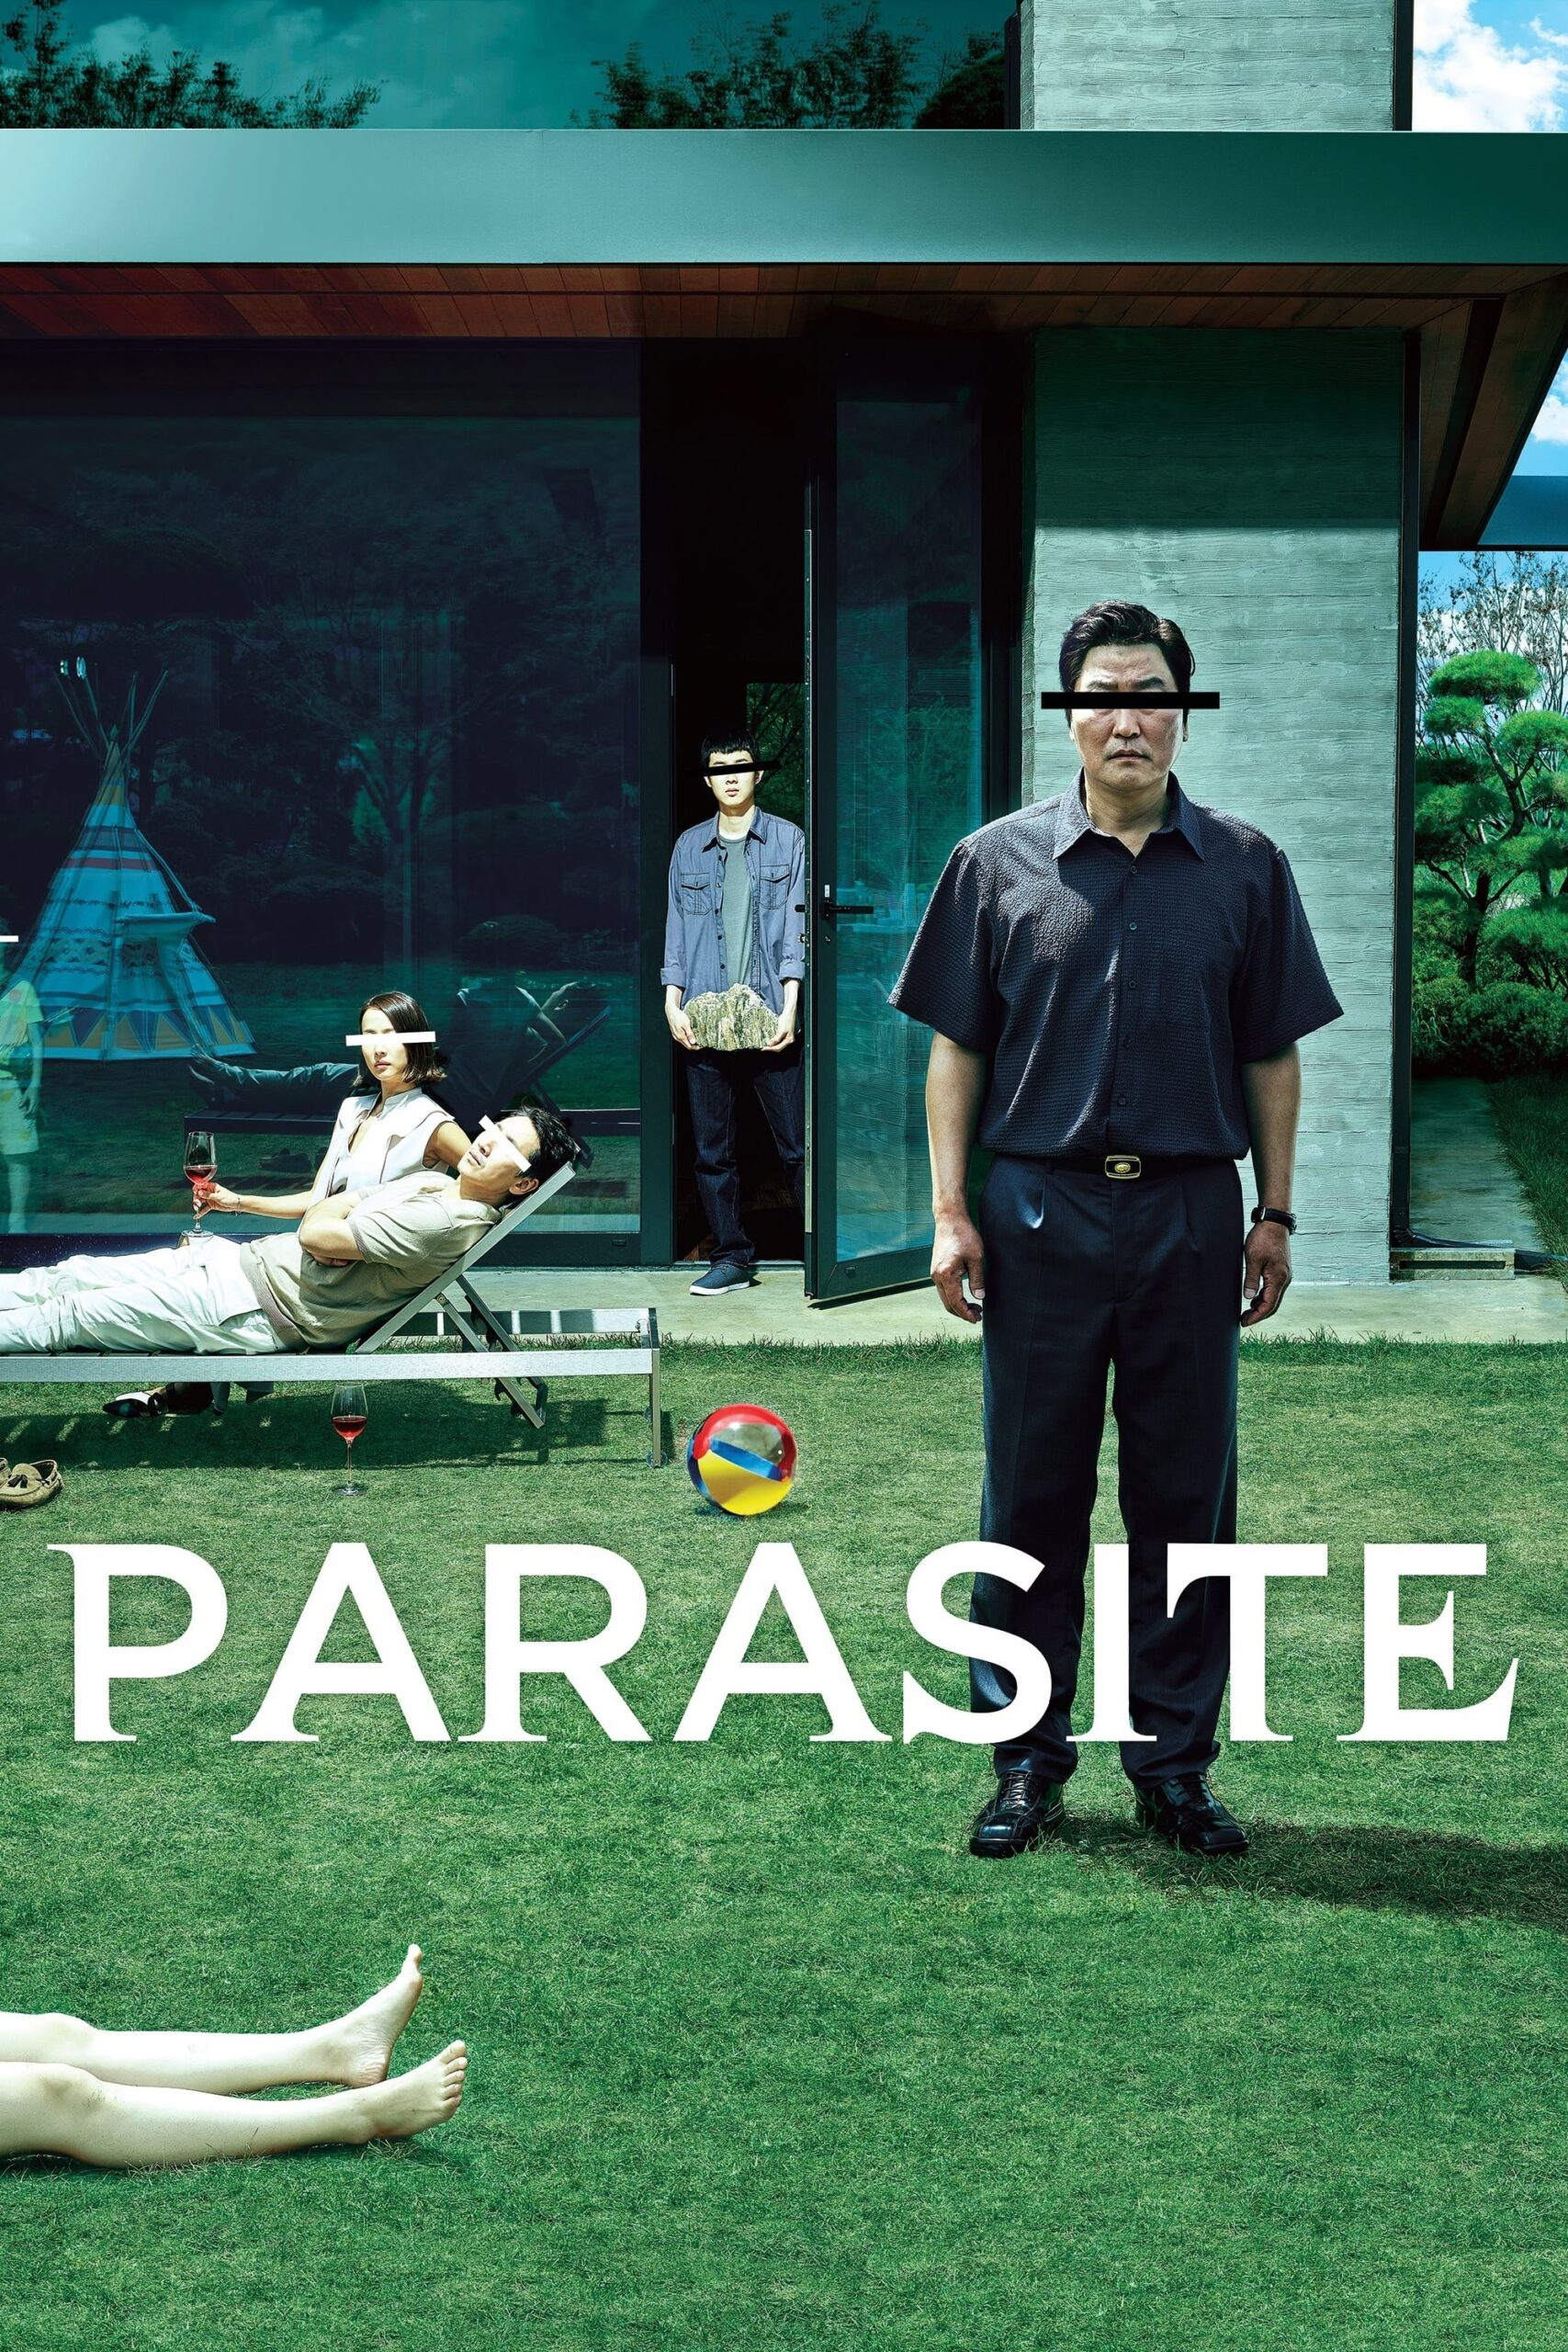 Parasite Movie Streaming Online Watch on Amazon